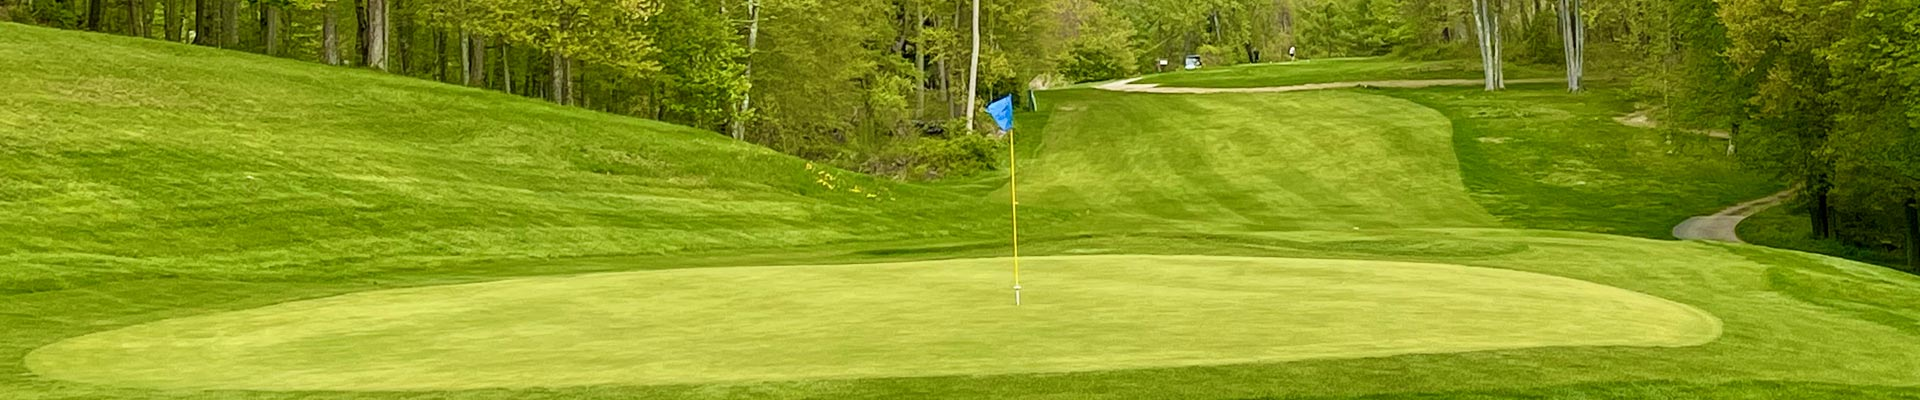 Somers National Golf Club | Somers, NY Public Course - Information